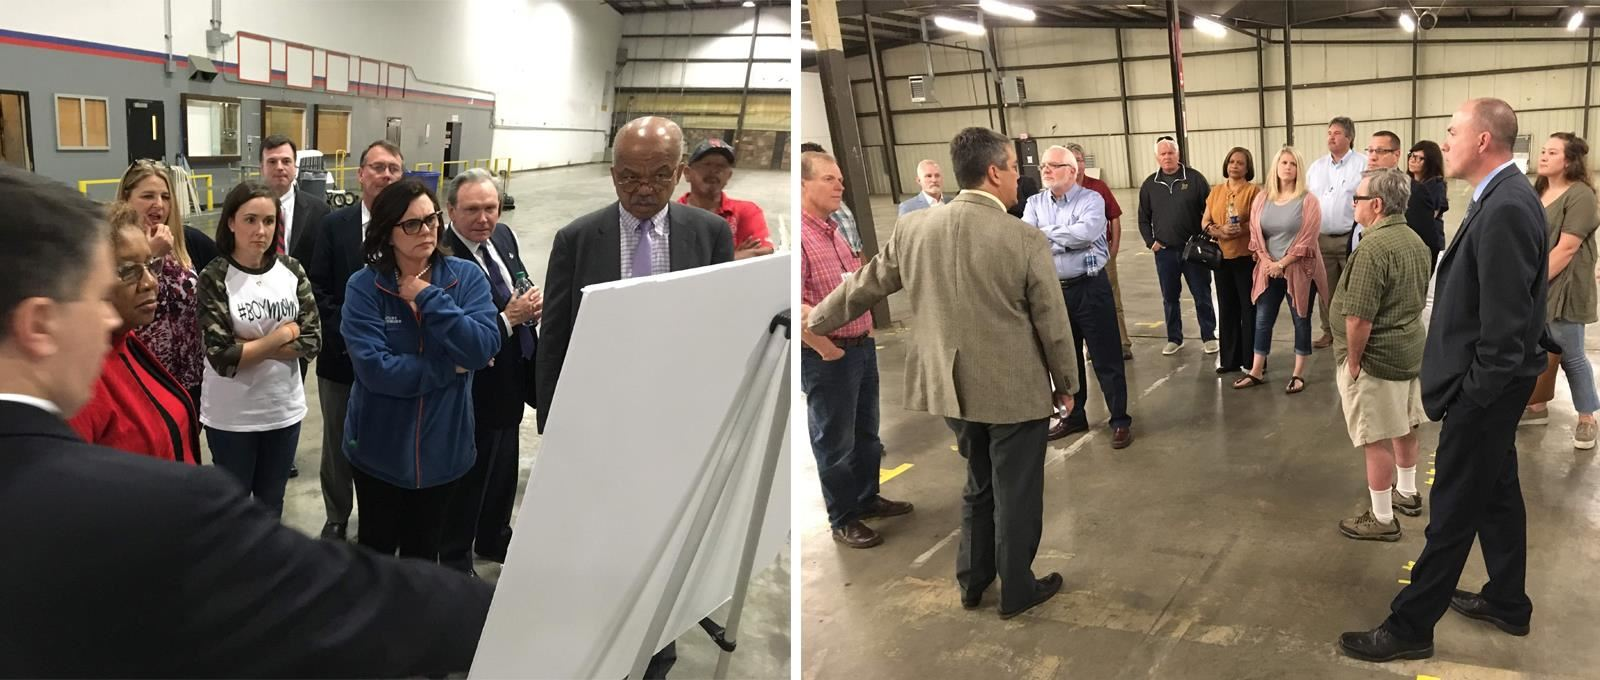 CMAC Members touring the future CTC facility